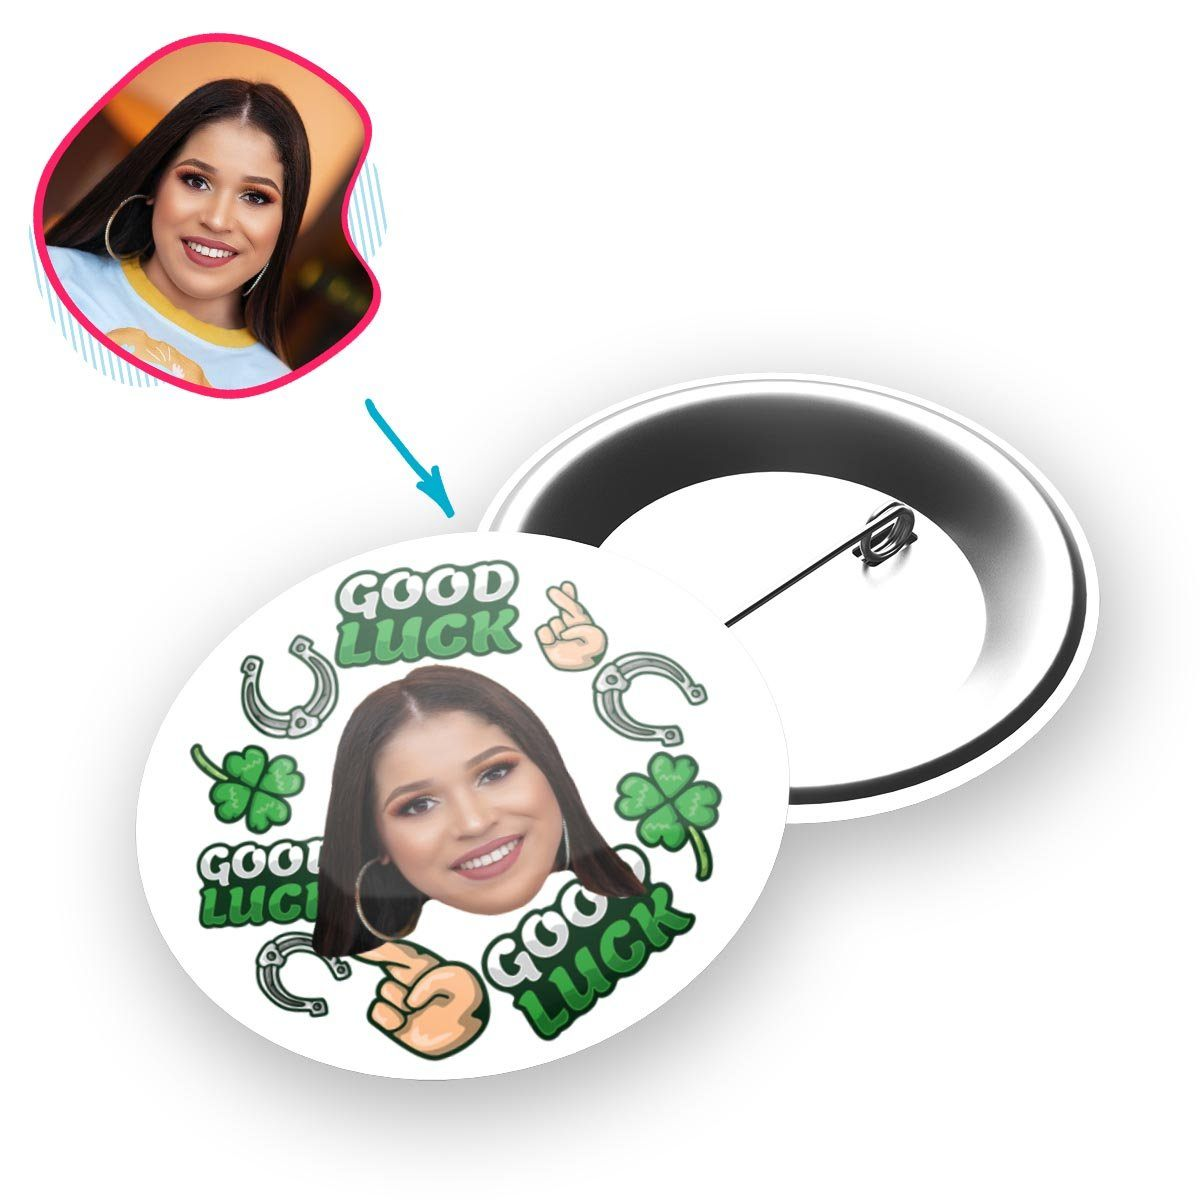 White Good Luck personalized pin with photo of face printed on it